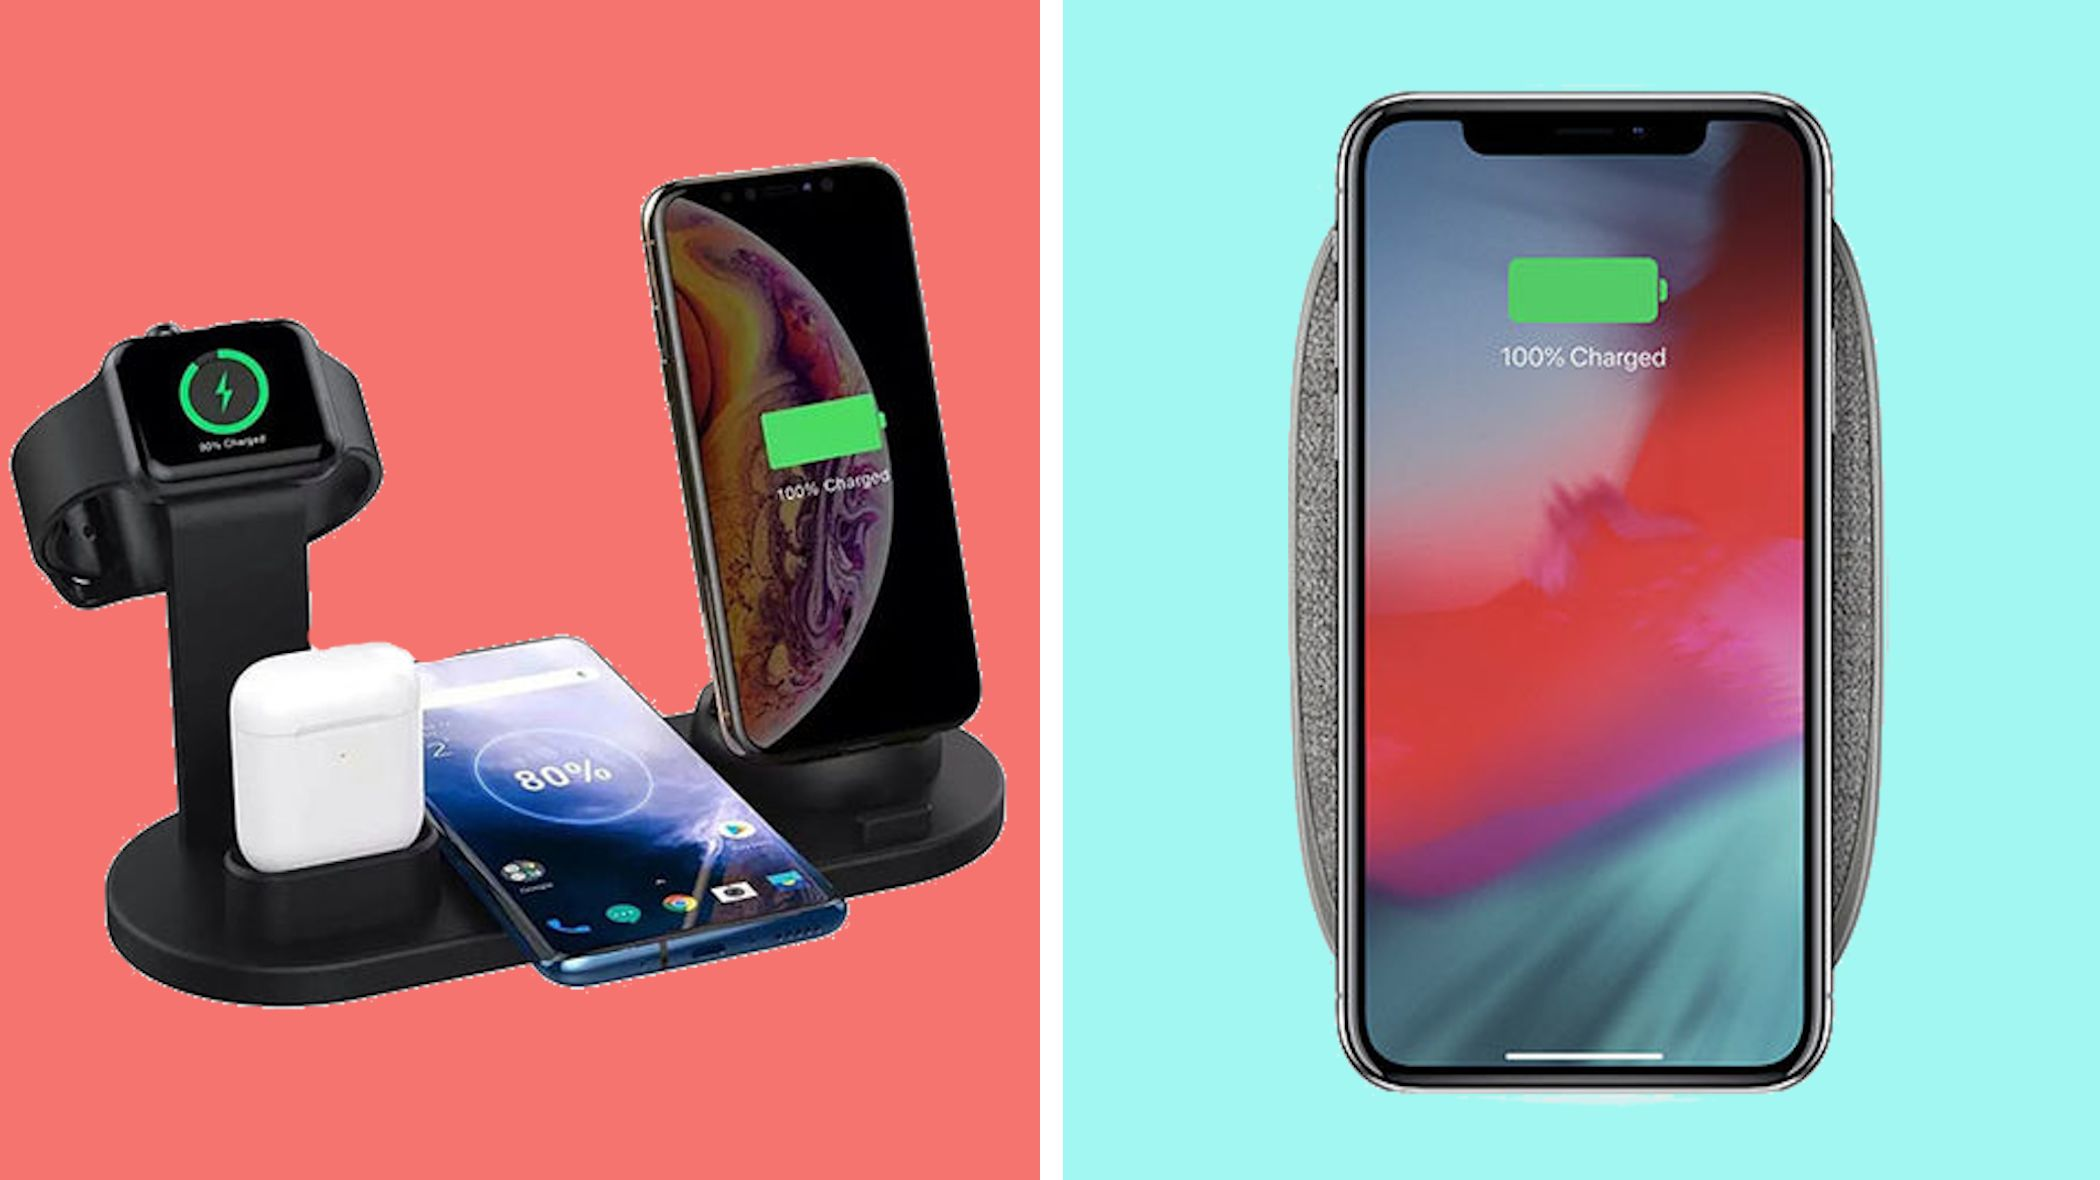 mentalfloss.com - 10 Wireless Chargers Designed to Make Life Easier